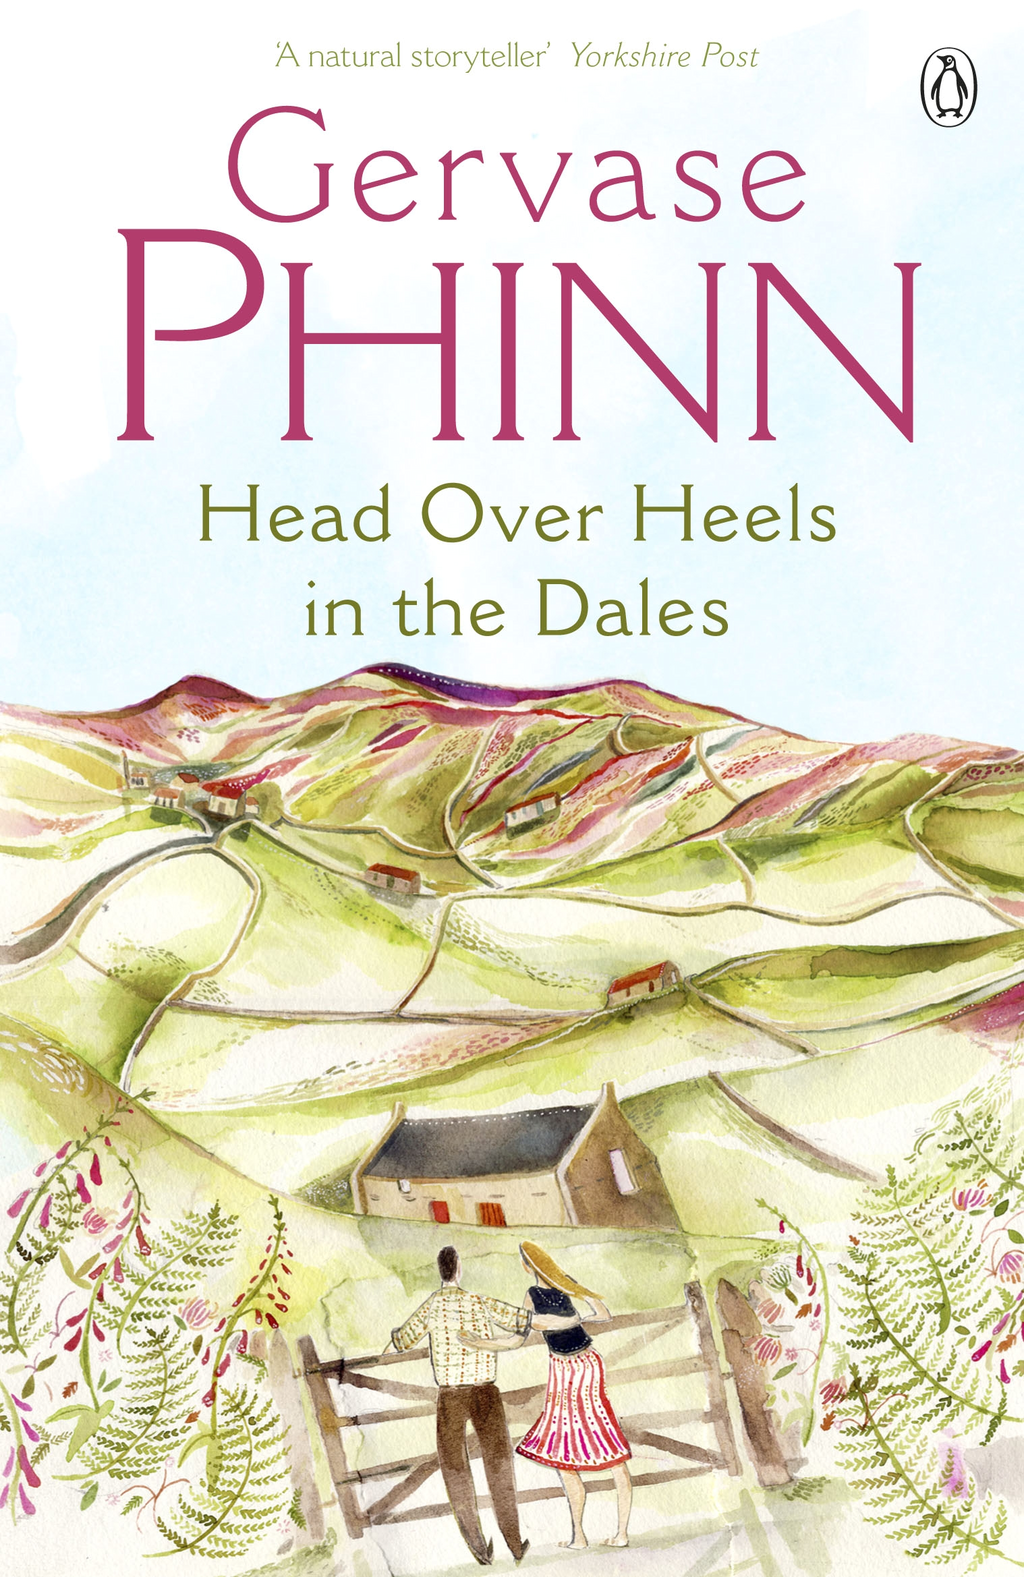 Head Over Heels in the Dales